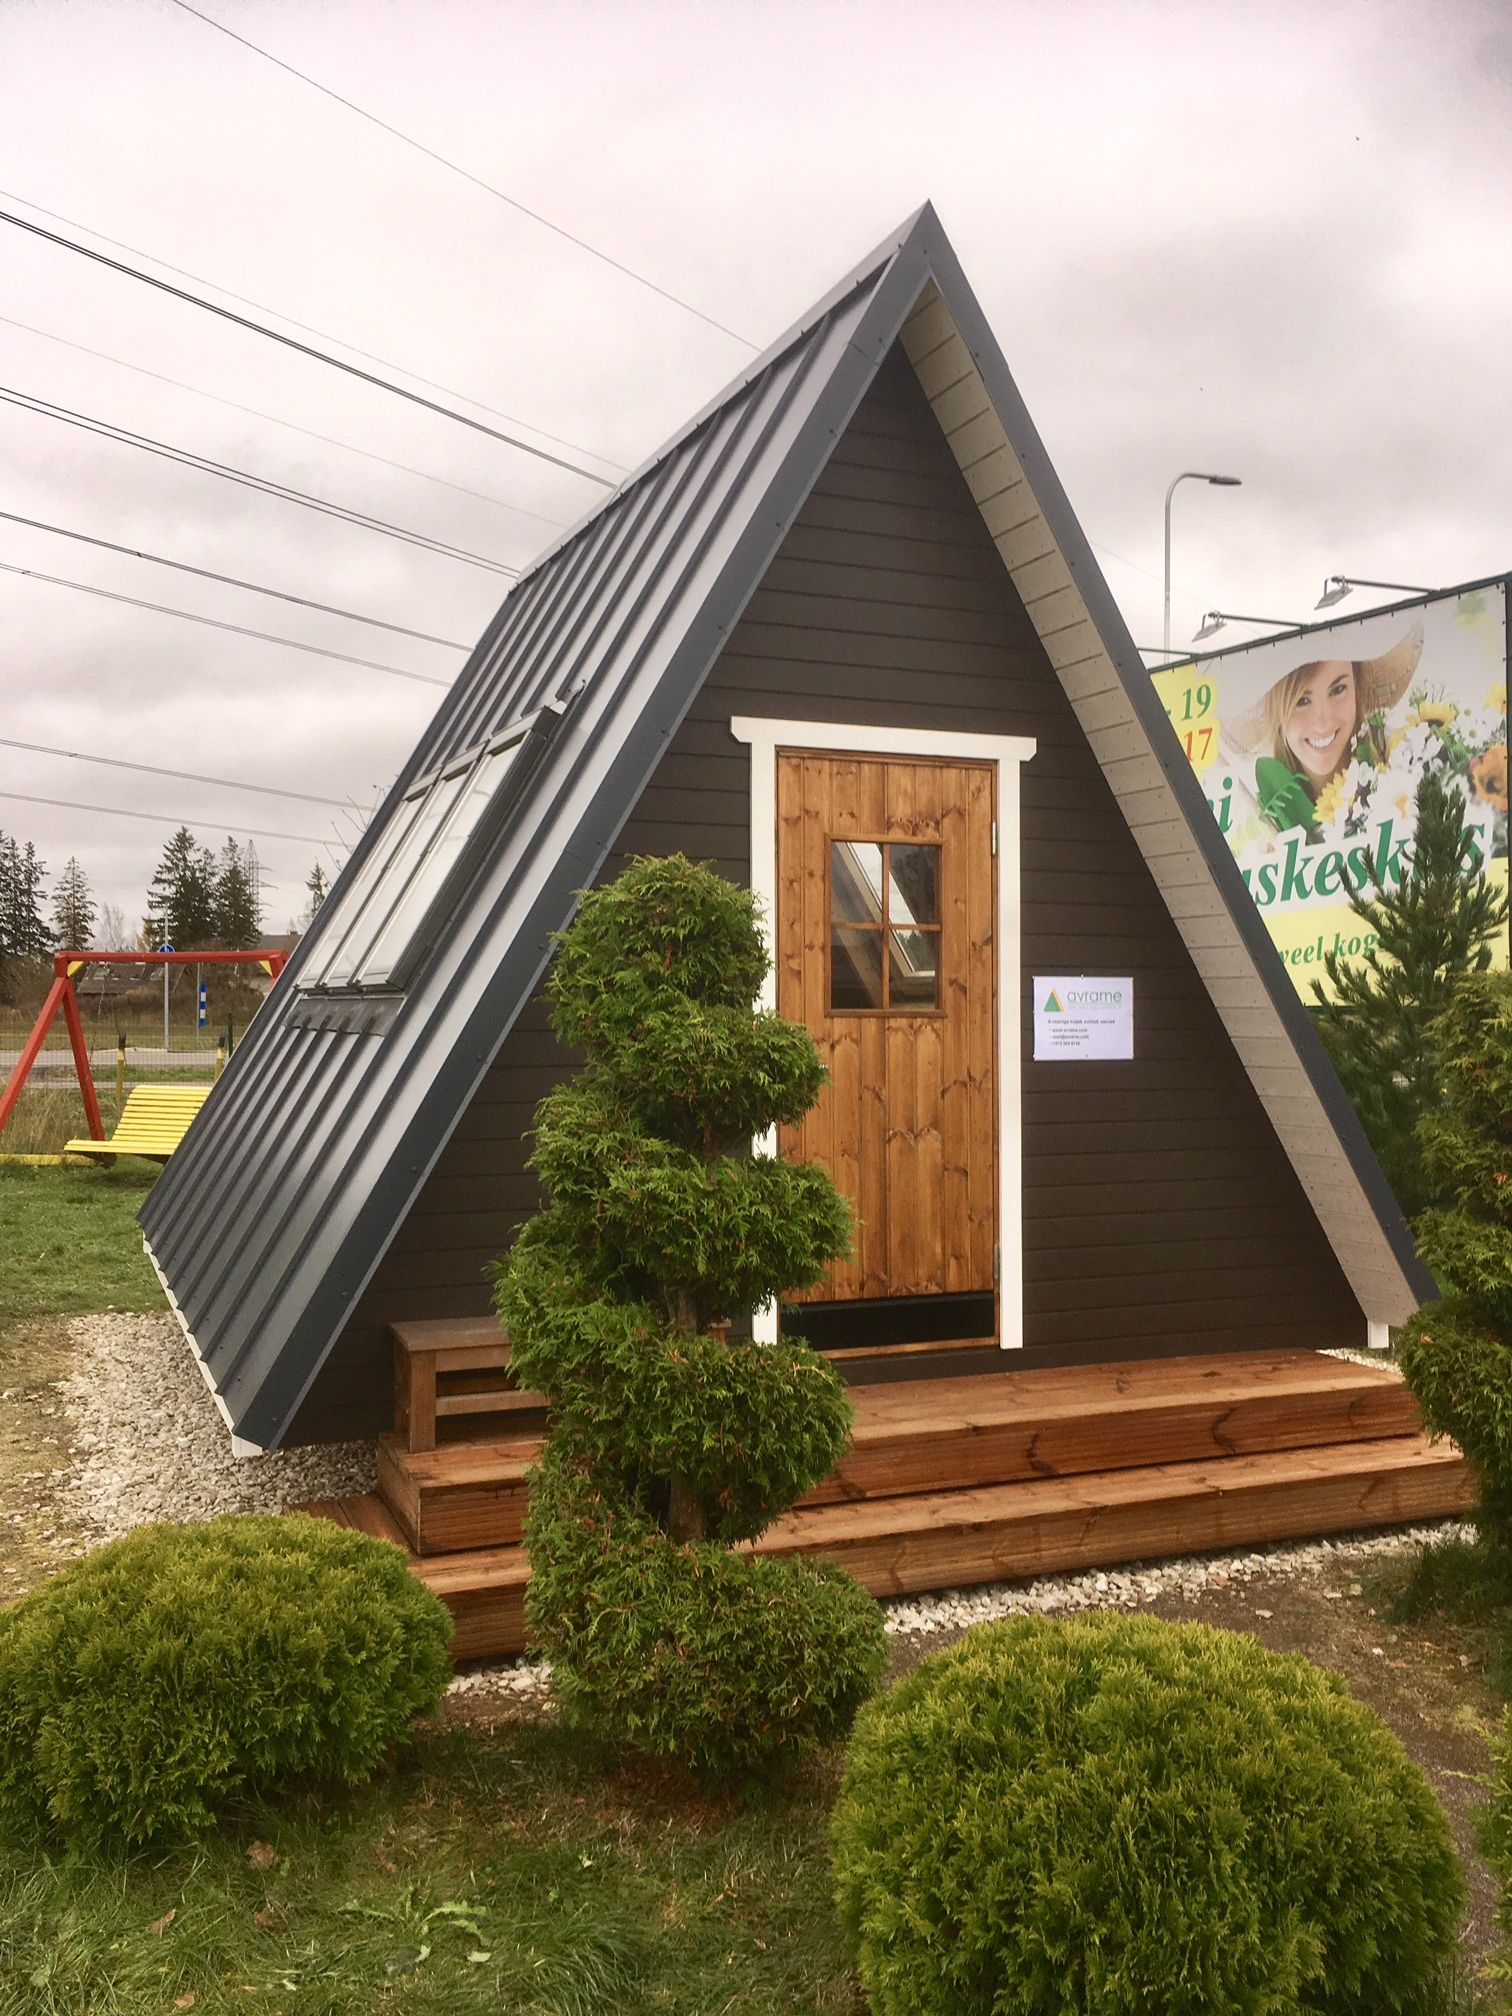 Affordable Housing With A Frame Kit Homes A Frame In